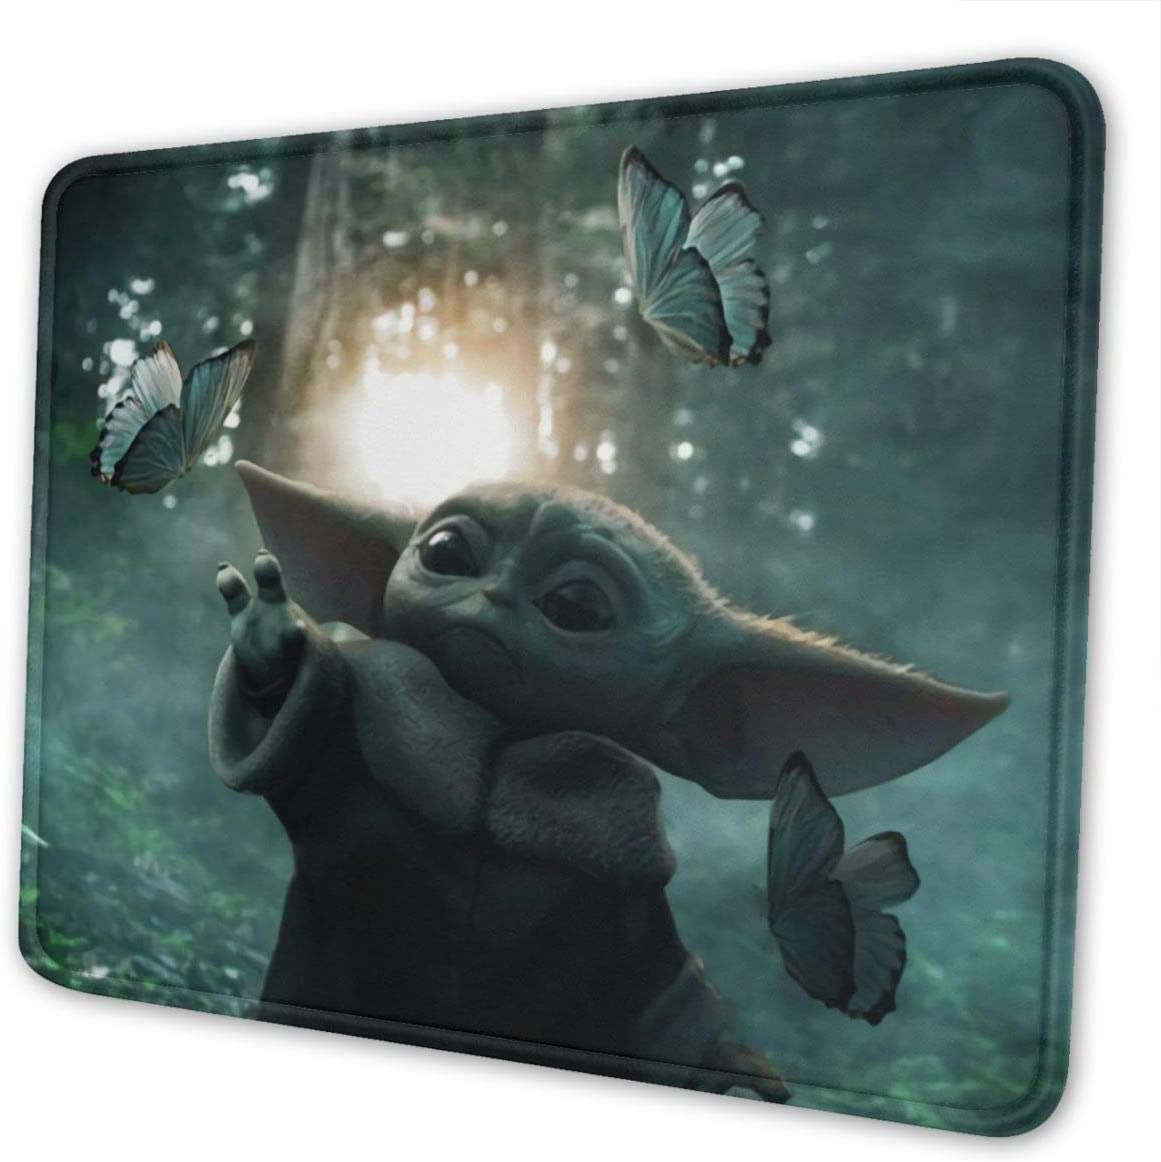 KRISMARIO Star W The Man-Dalorian Ba-by Yo-Da Mouse Pad, Premium-Textured Printing Mouse Mat, Non-Slip Rubber Base Mousepad for Laptop, Computer & Pc, 8.3 X 10.3 in